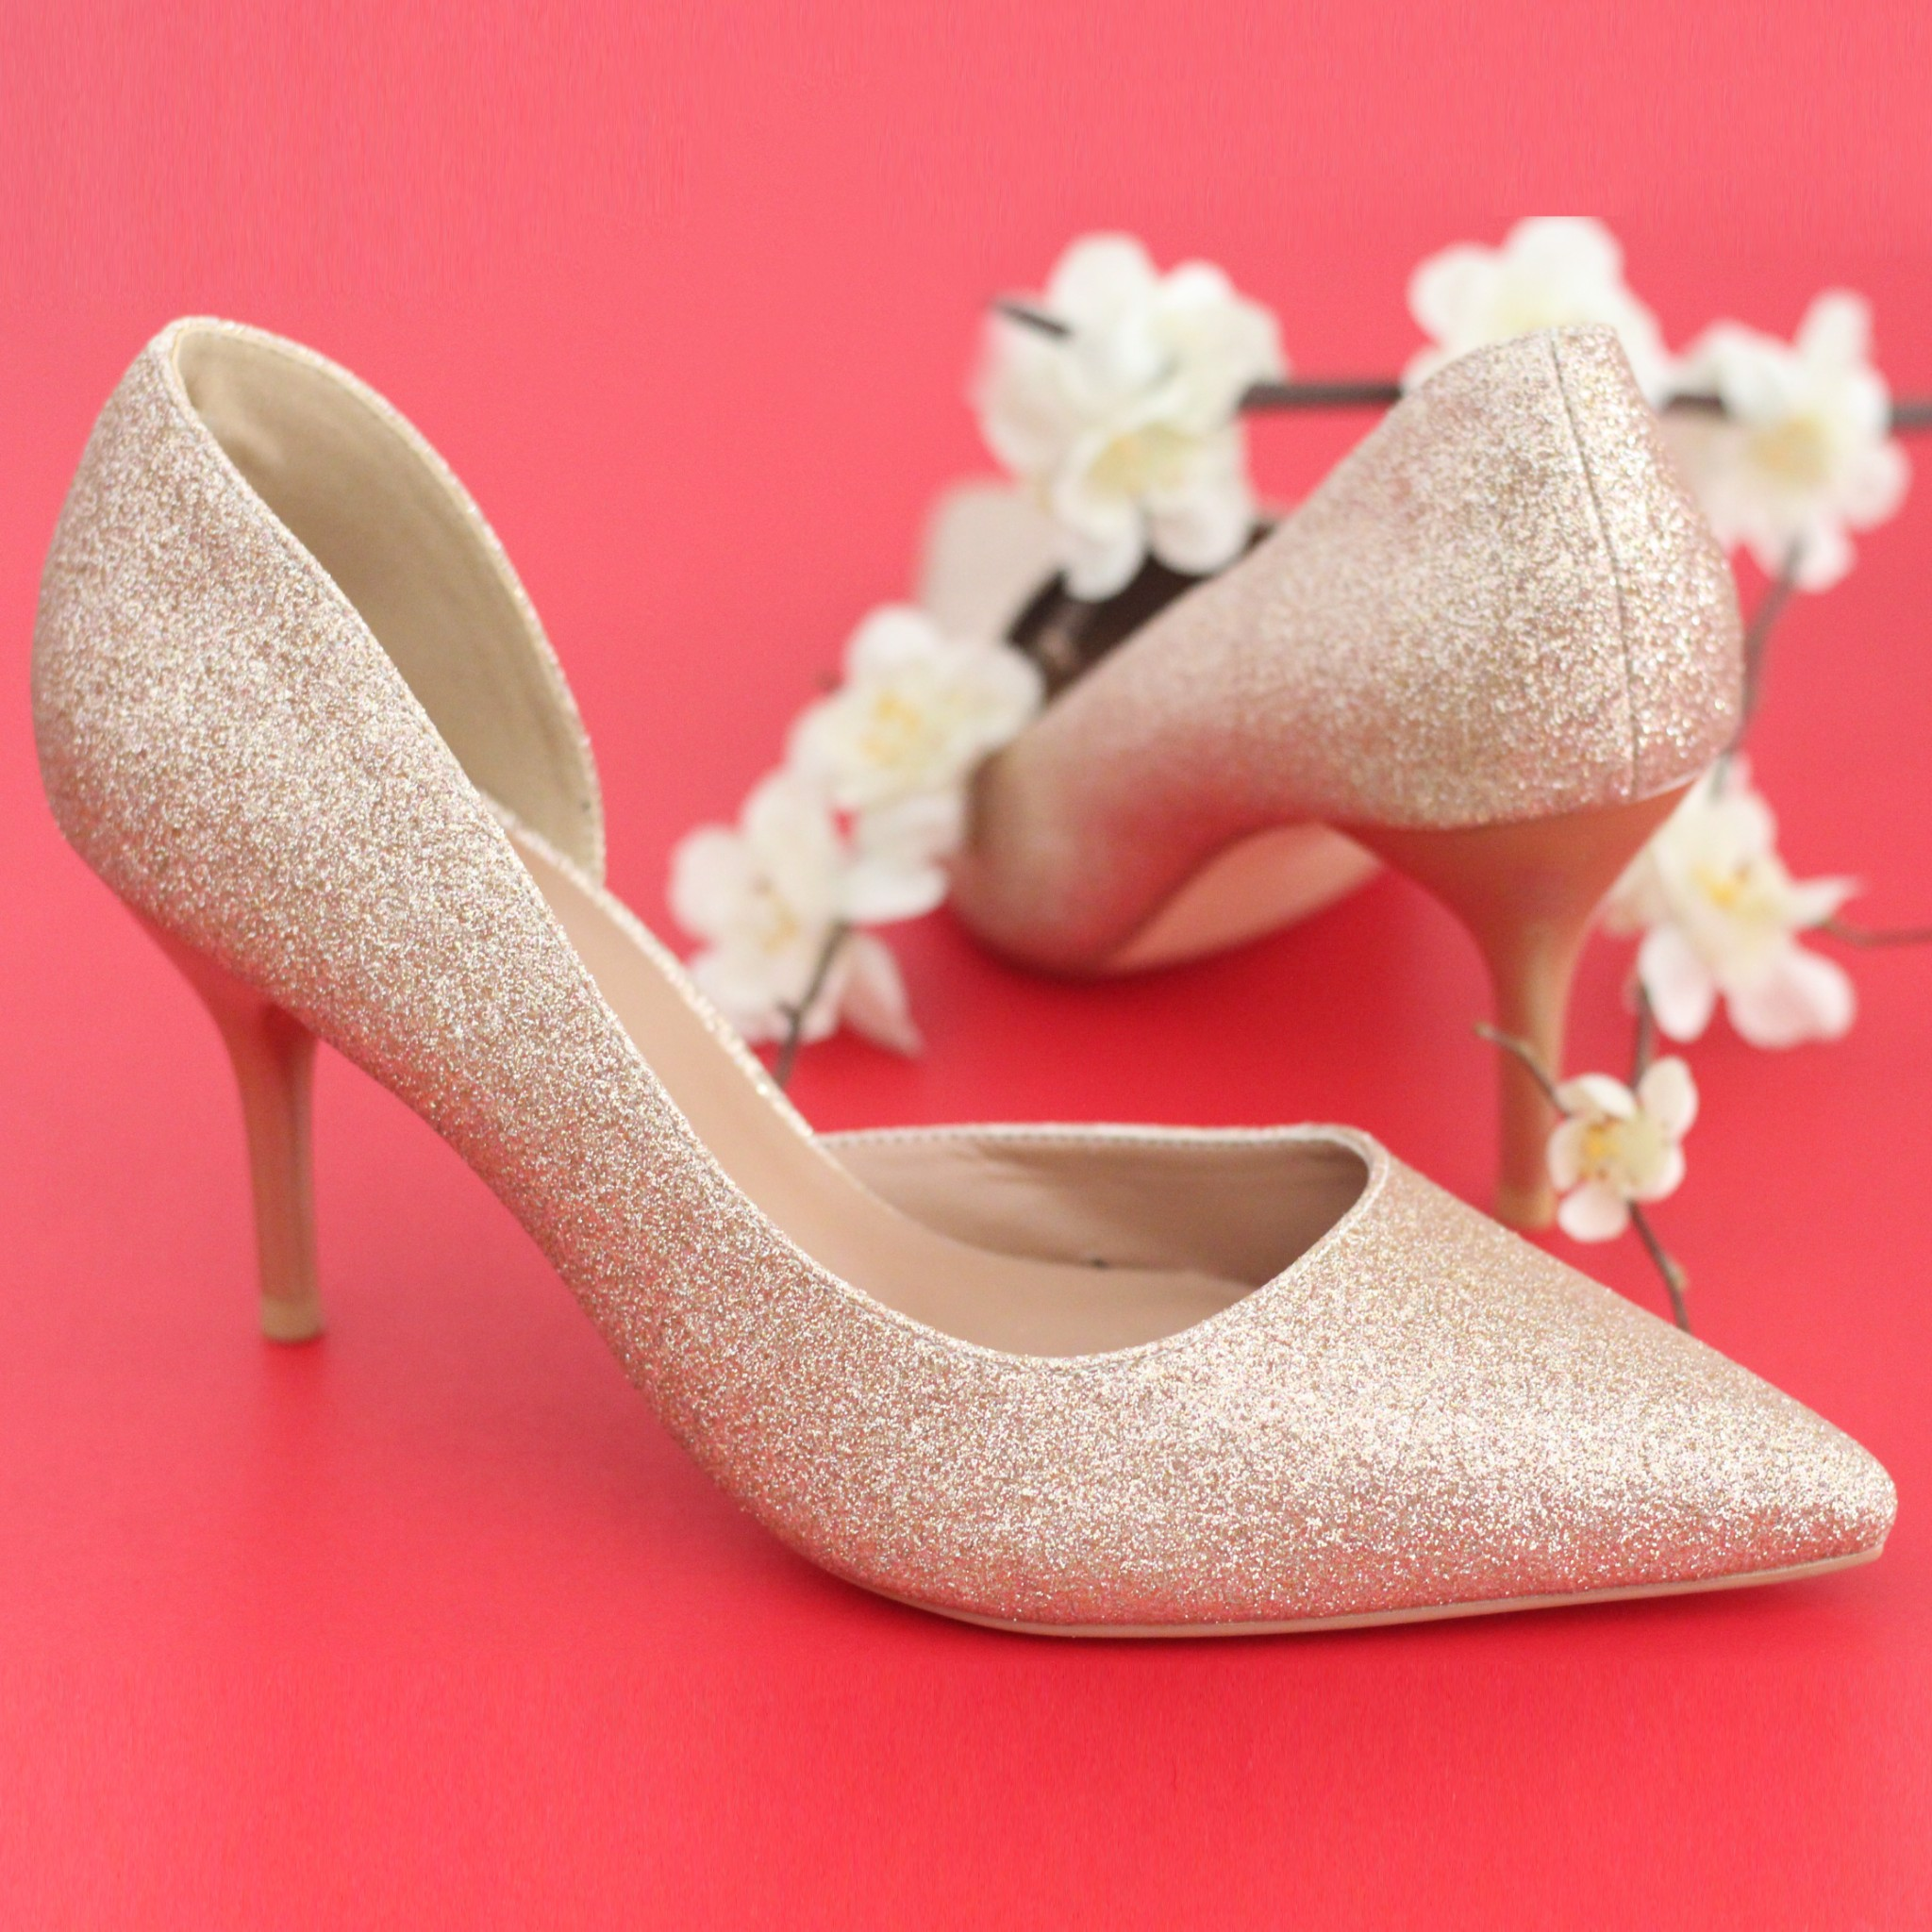 Dreamy Pumps